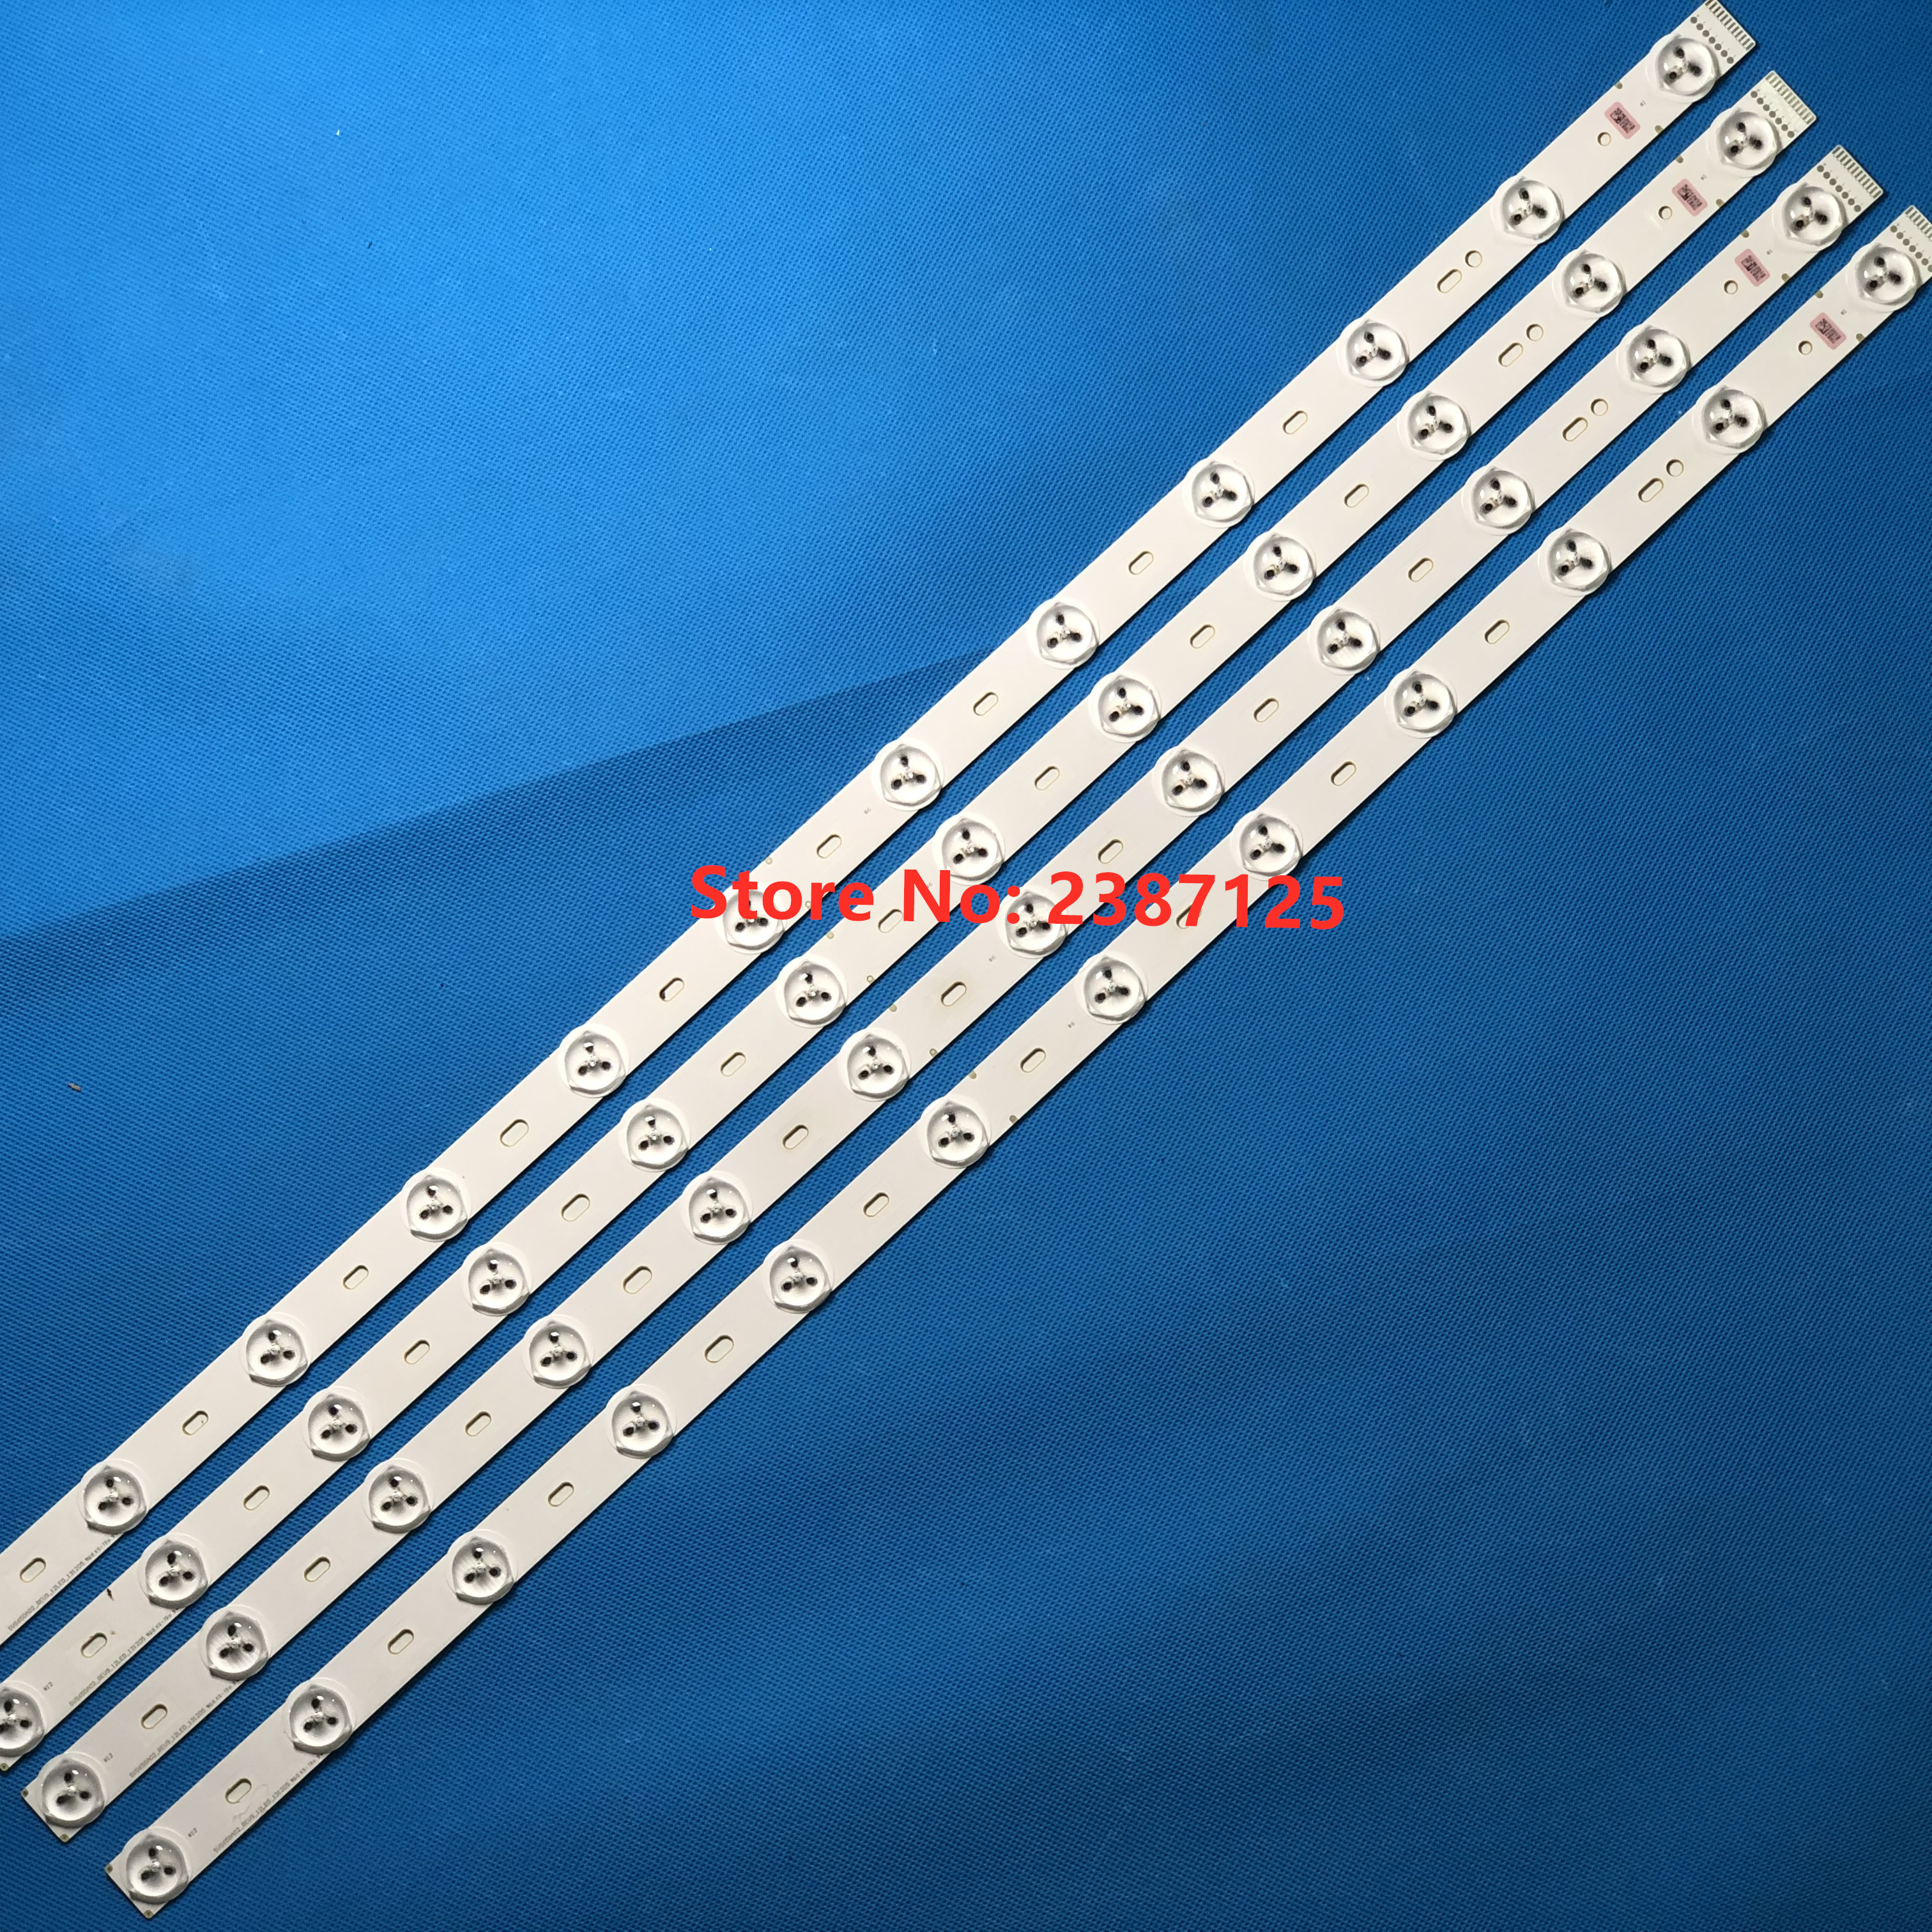 1lot=12 Pieces For Phili Ps Backlight 65PUS9809 LED TV SVS650A02-REV9_12LED SVS650A02_REV9_12LED_131205 LTA650FJ01